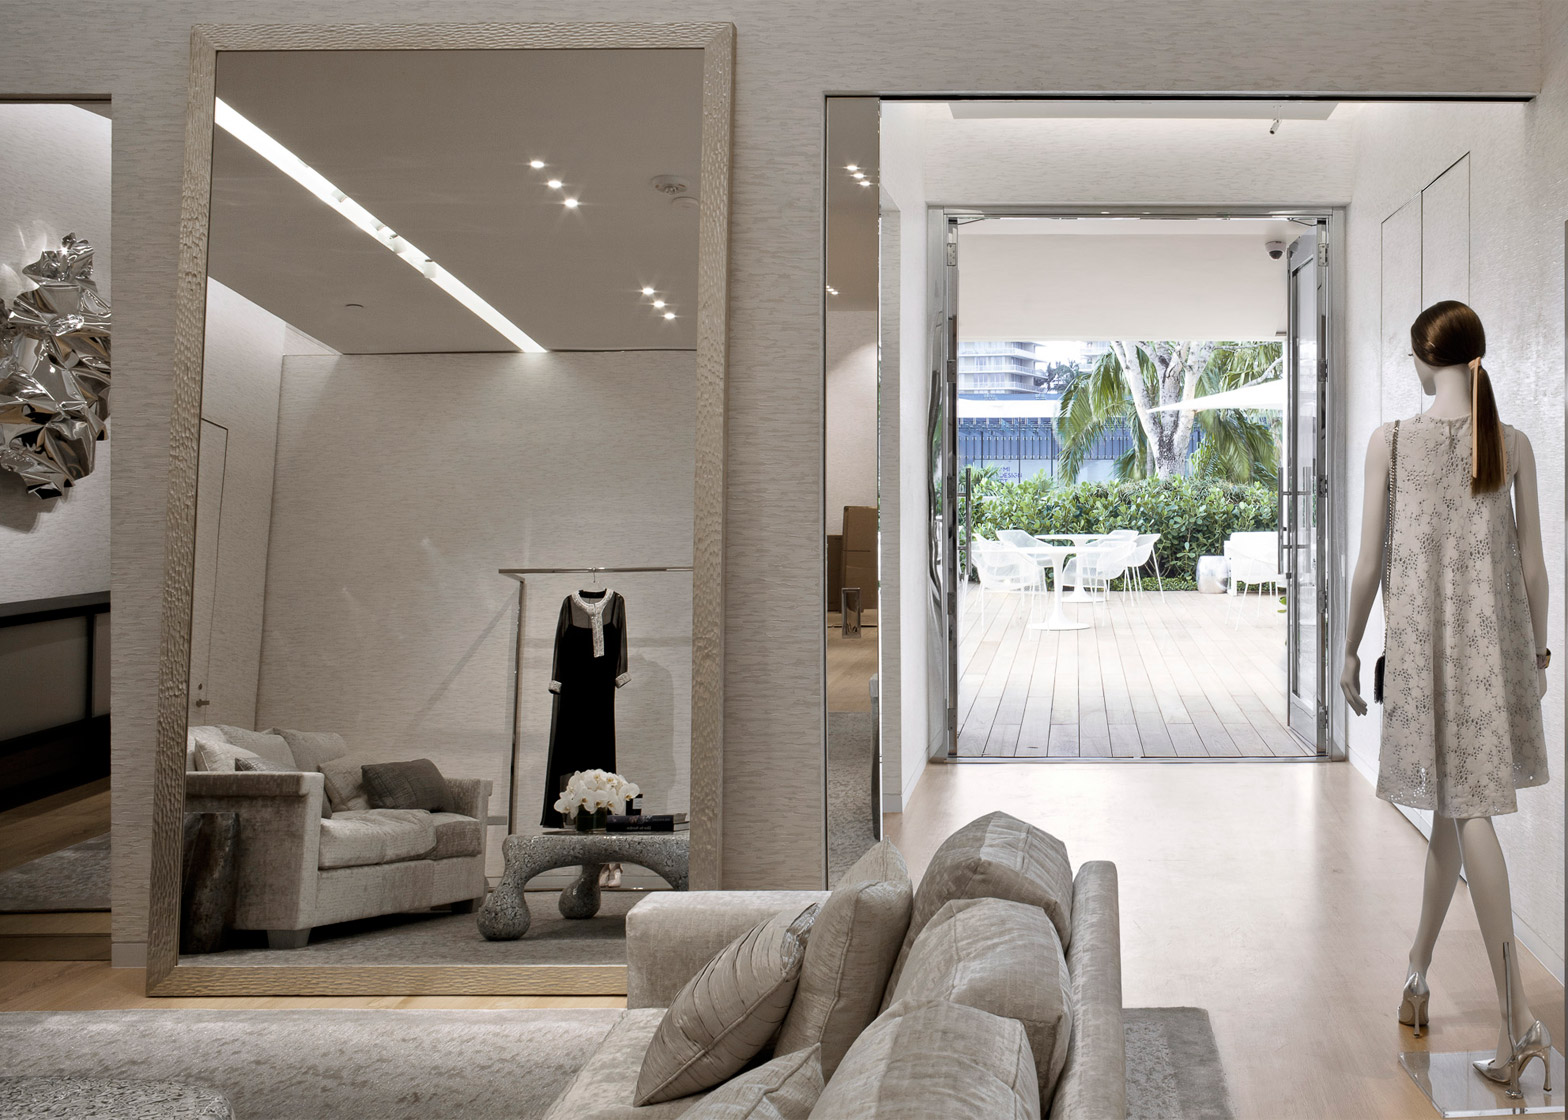 Miami Dior Boutique By Barbarito Bancel